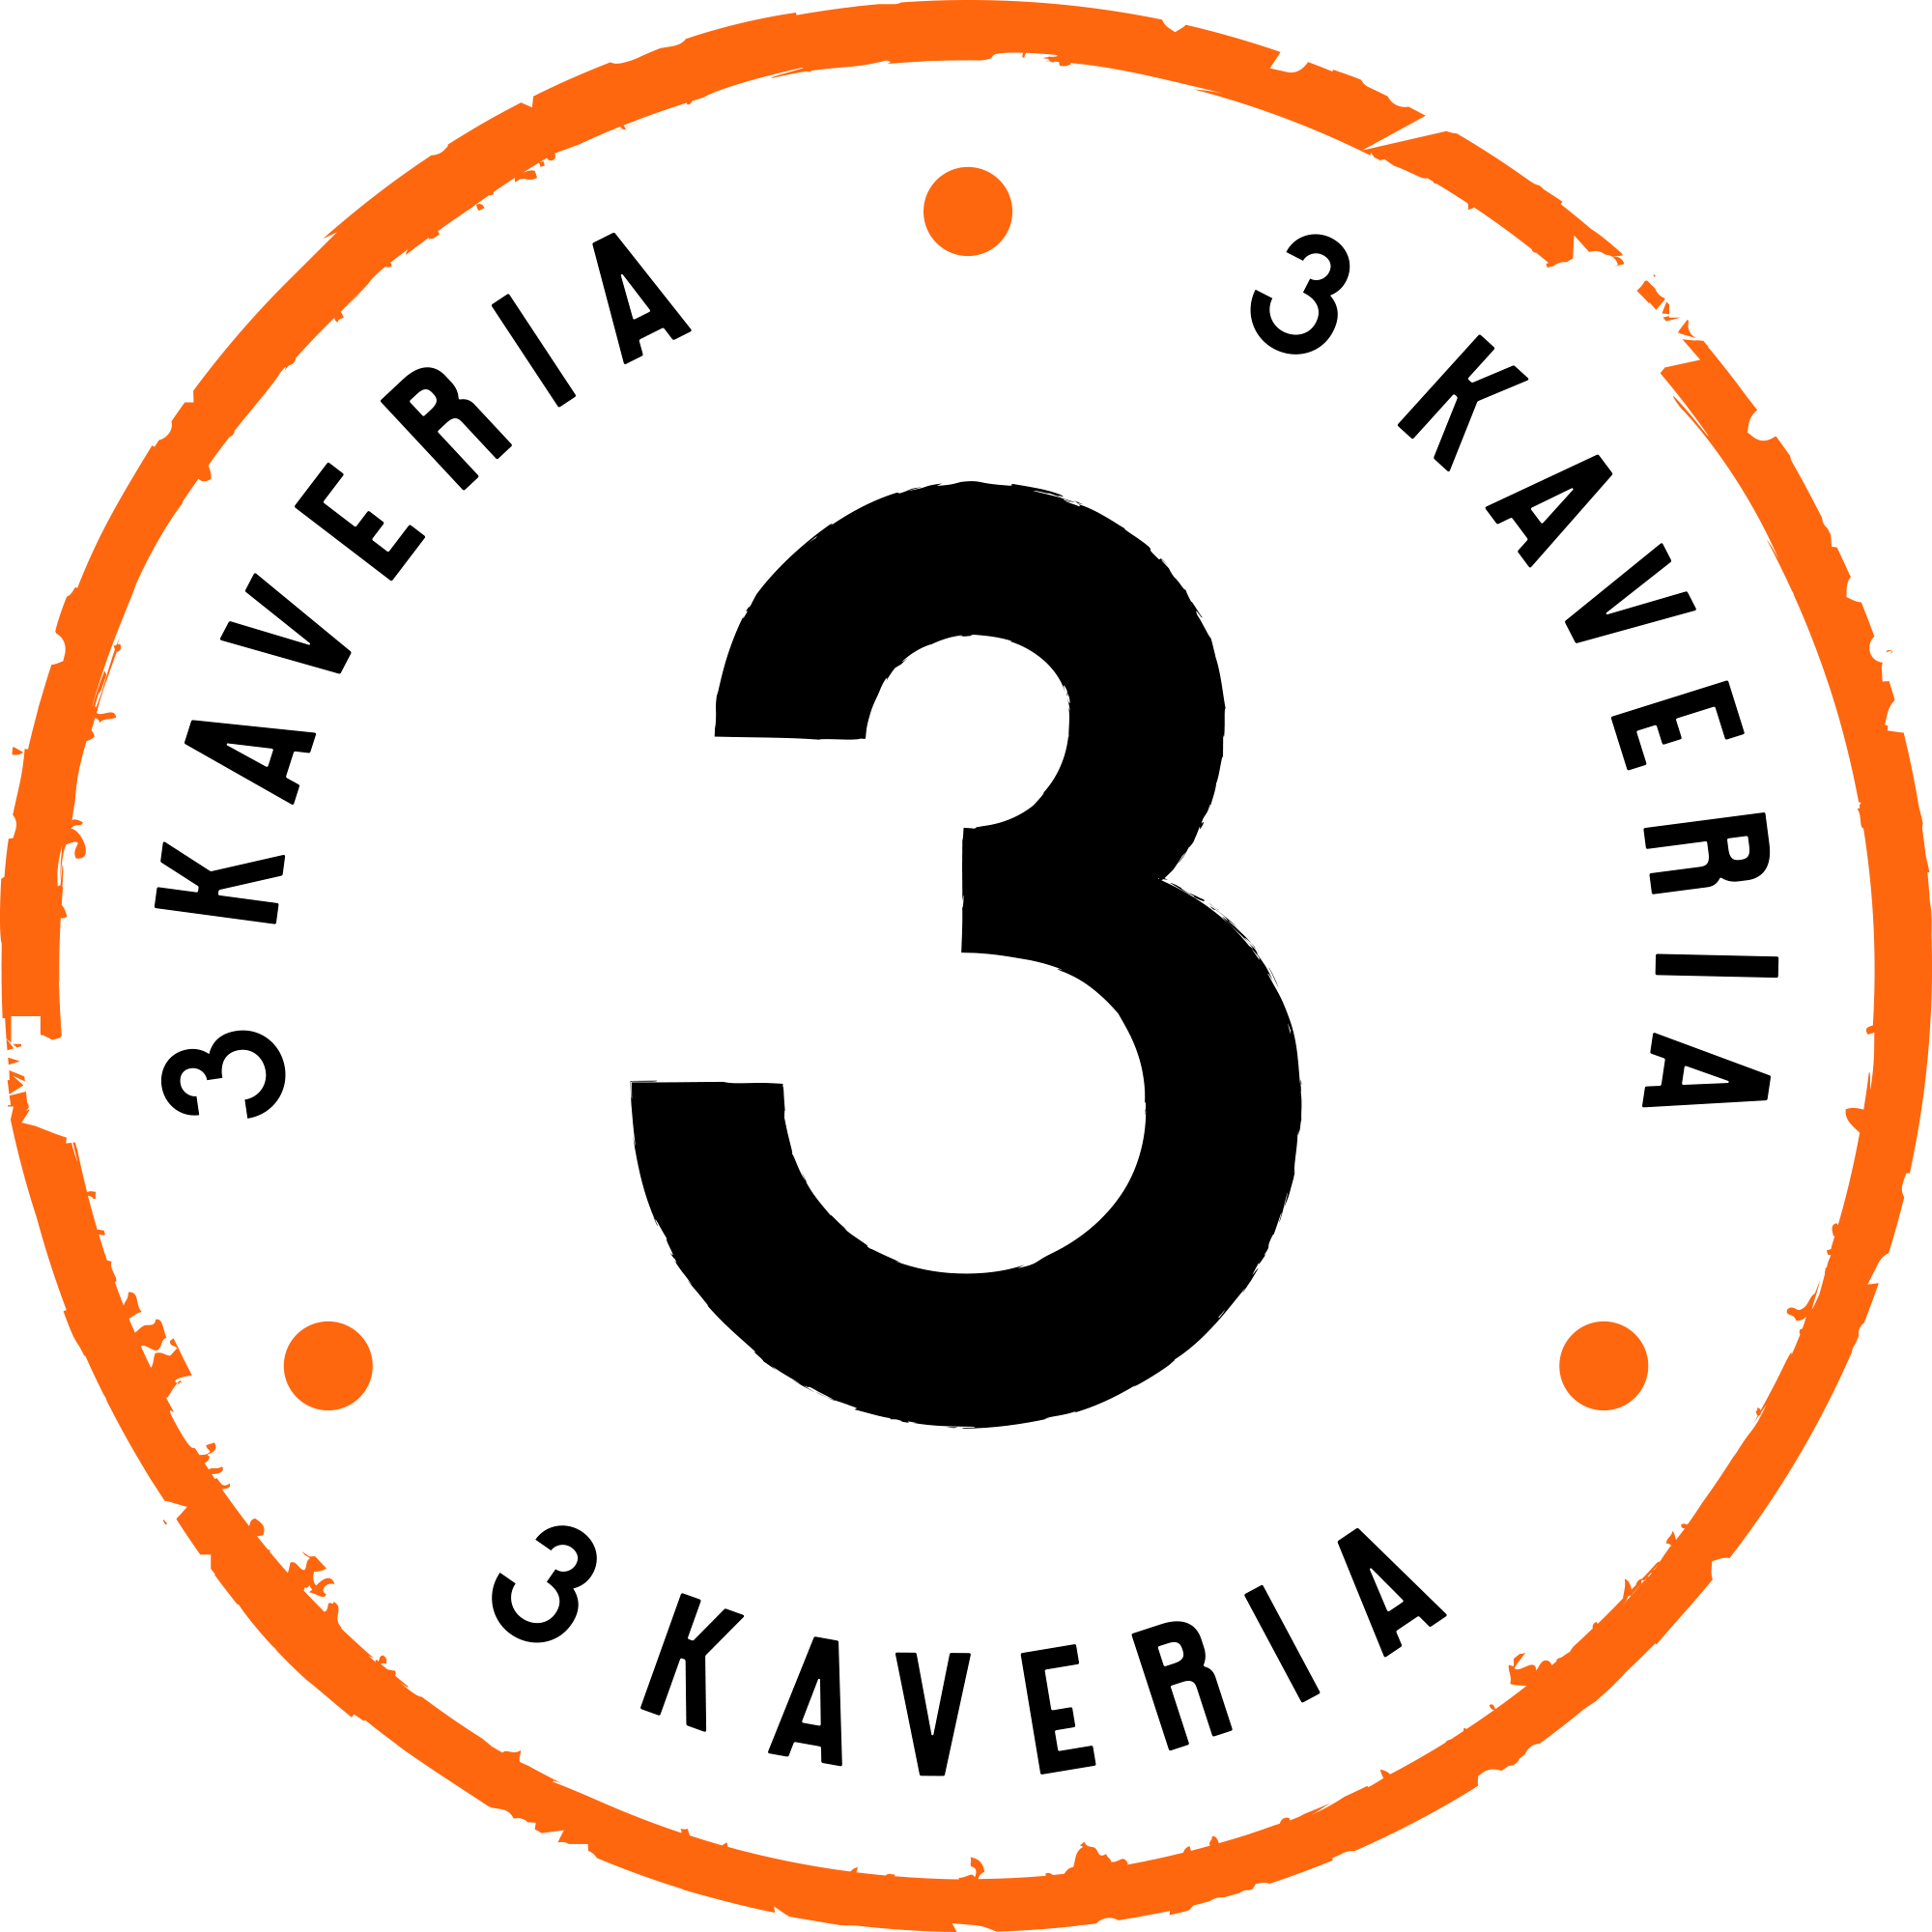 Case: 3 Kaveria